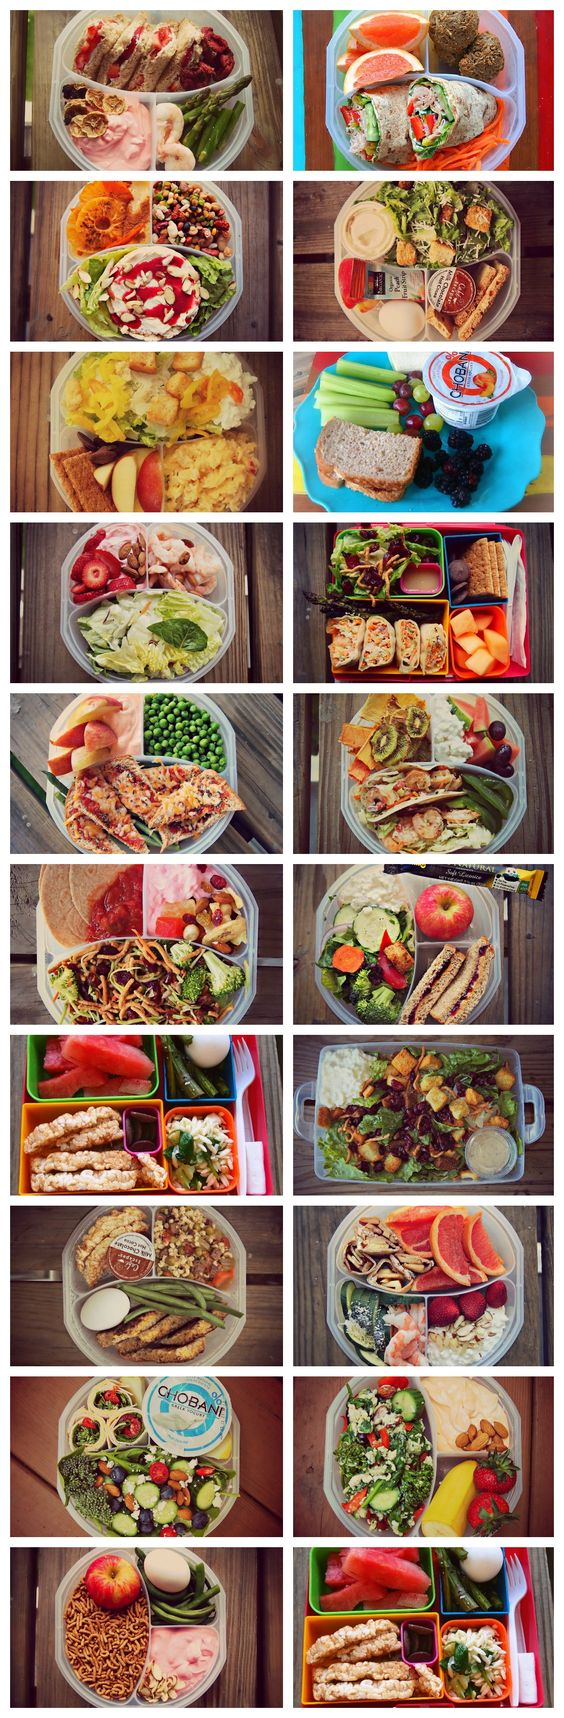 Healthy Lunch Ideas. This blogger posts a picture of her lunch every day - tons of super healthy, balanced, and colorful ideas!